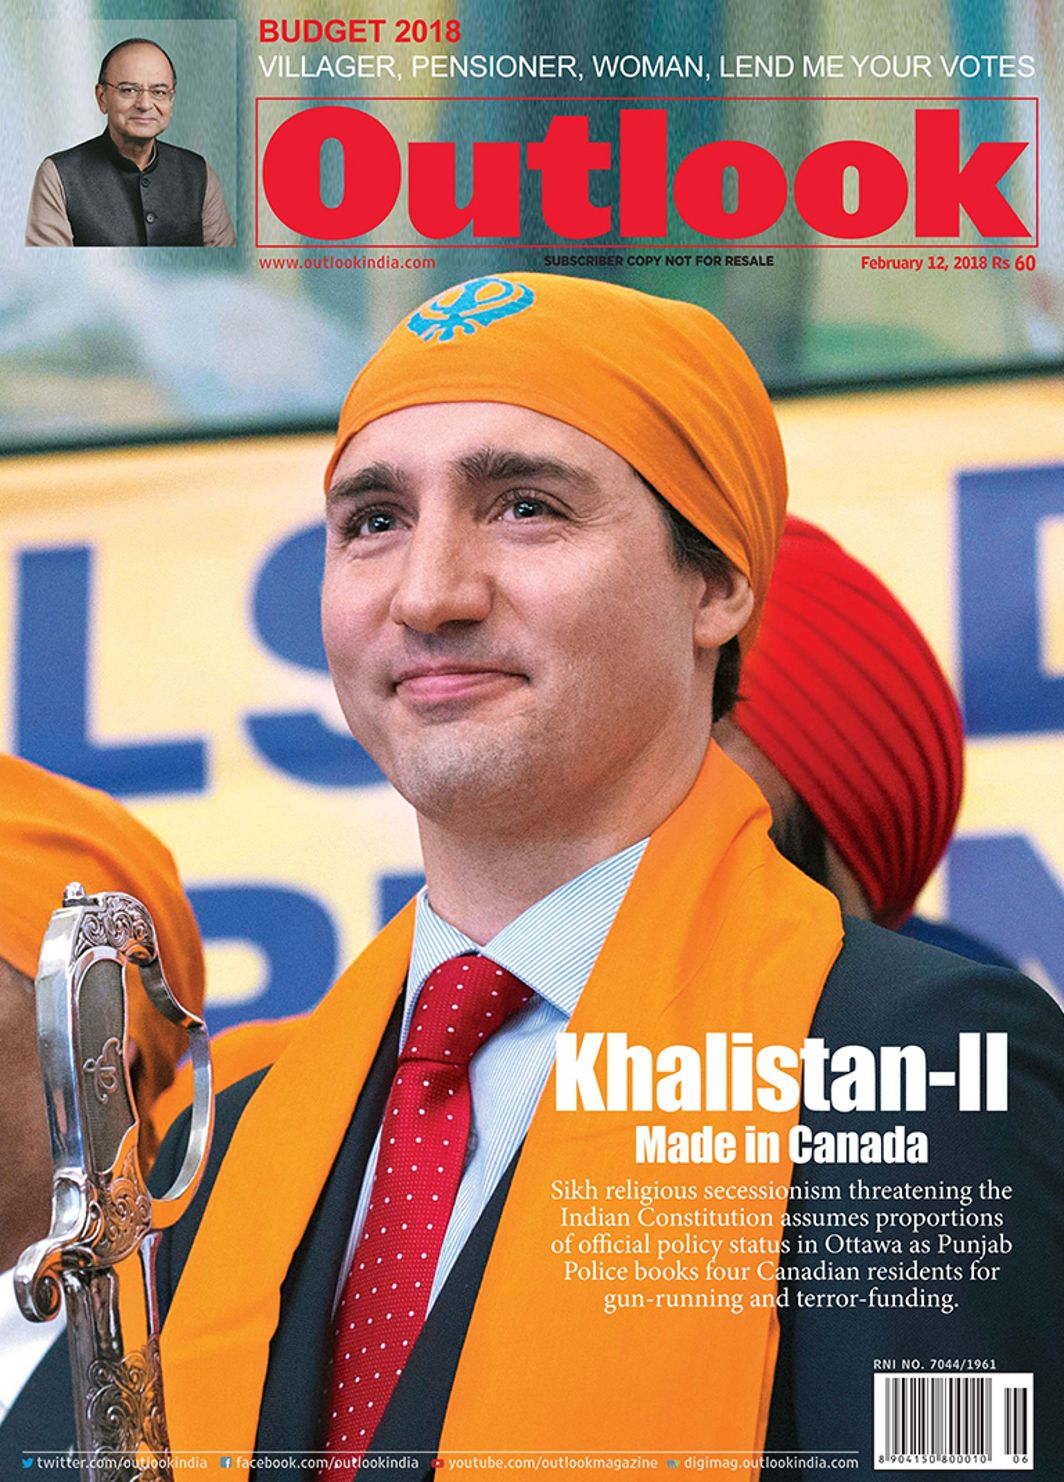 Canada rejects allegations on support to Sikh separatists